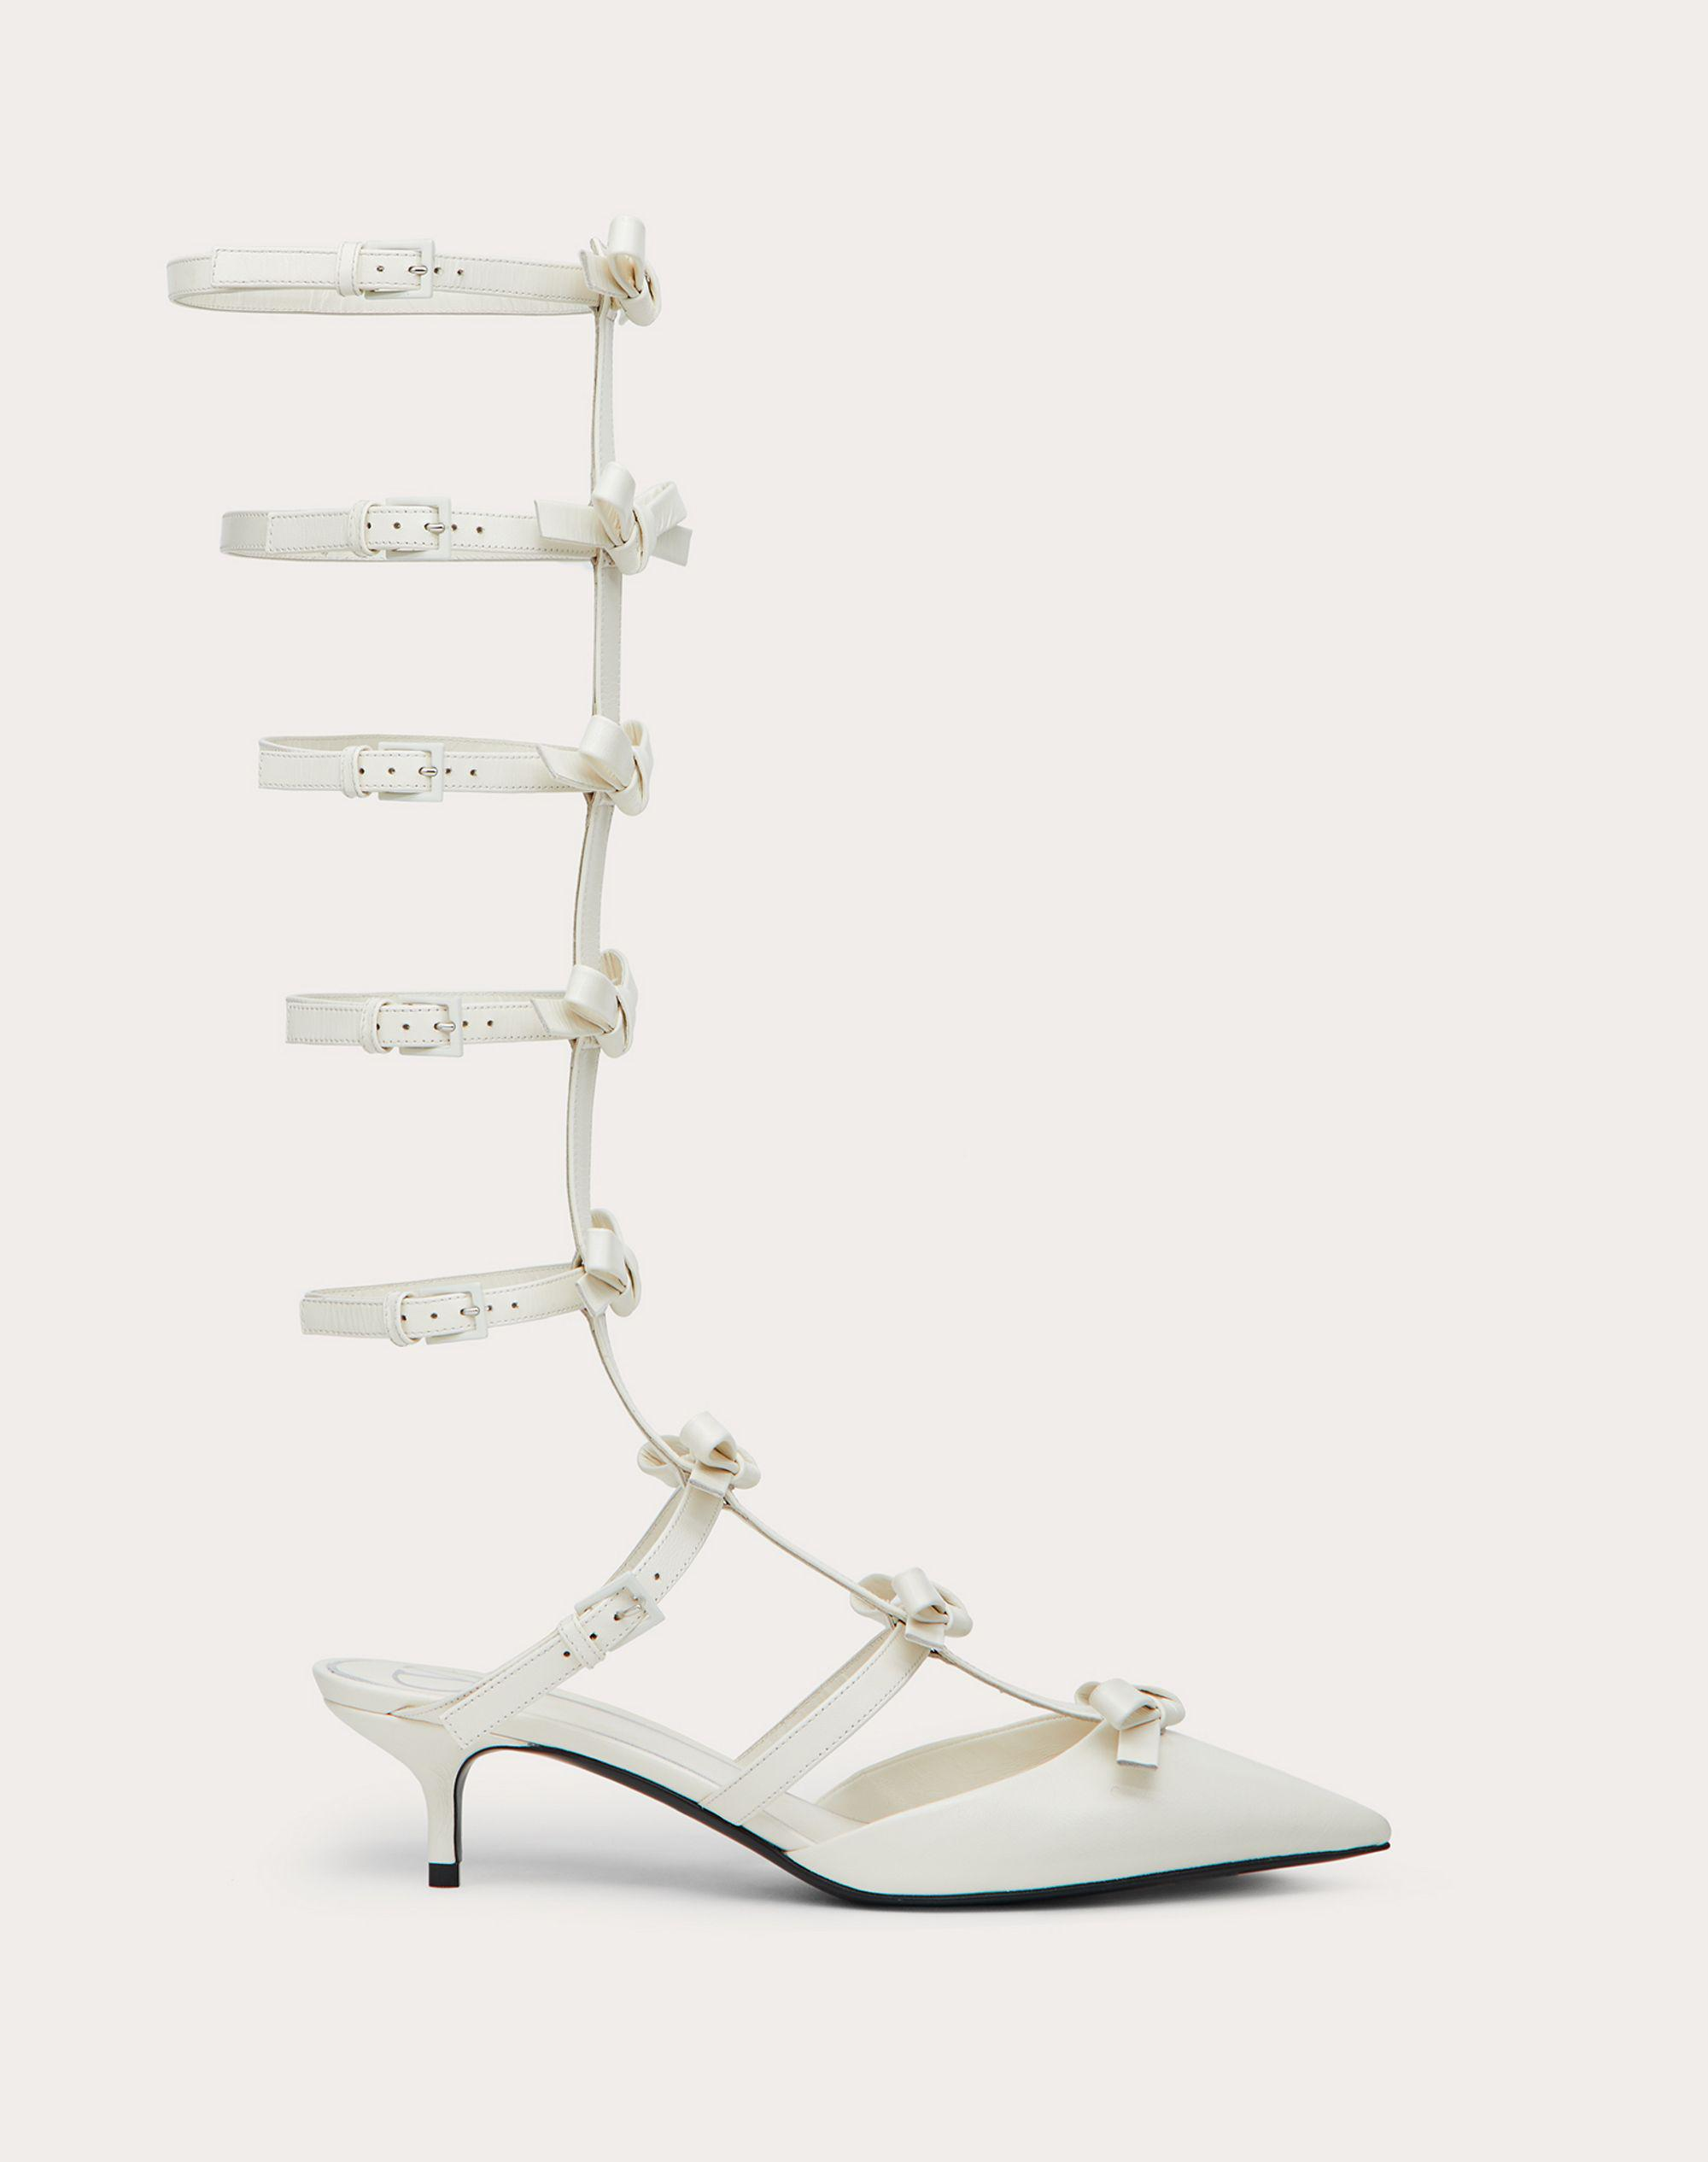 ANKLE STRAP PUMP WITH KIDSKIN FRENCH BOWS  40 MM